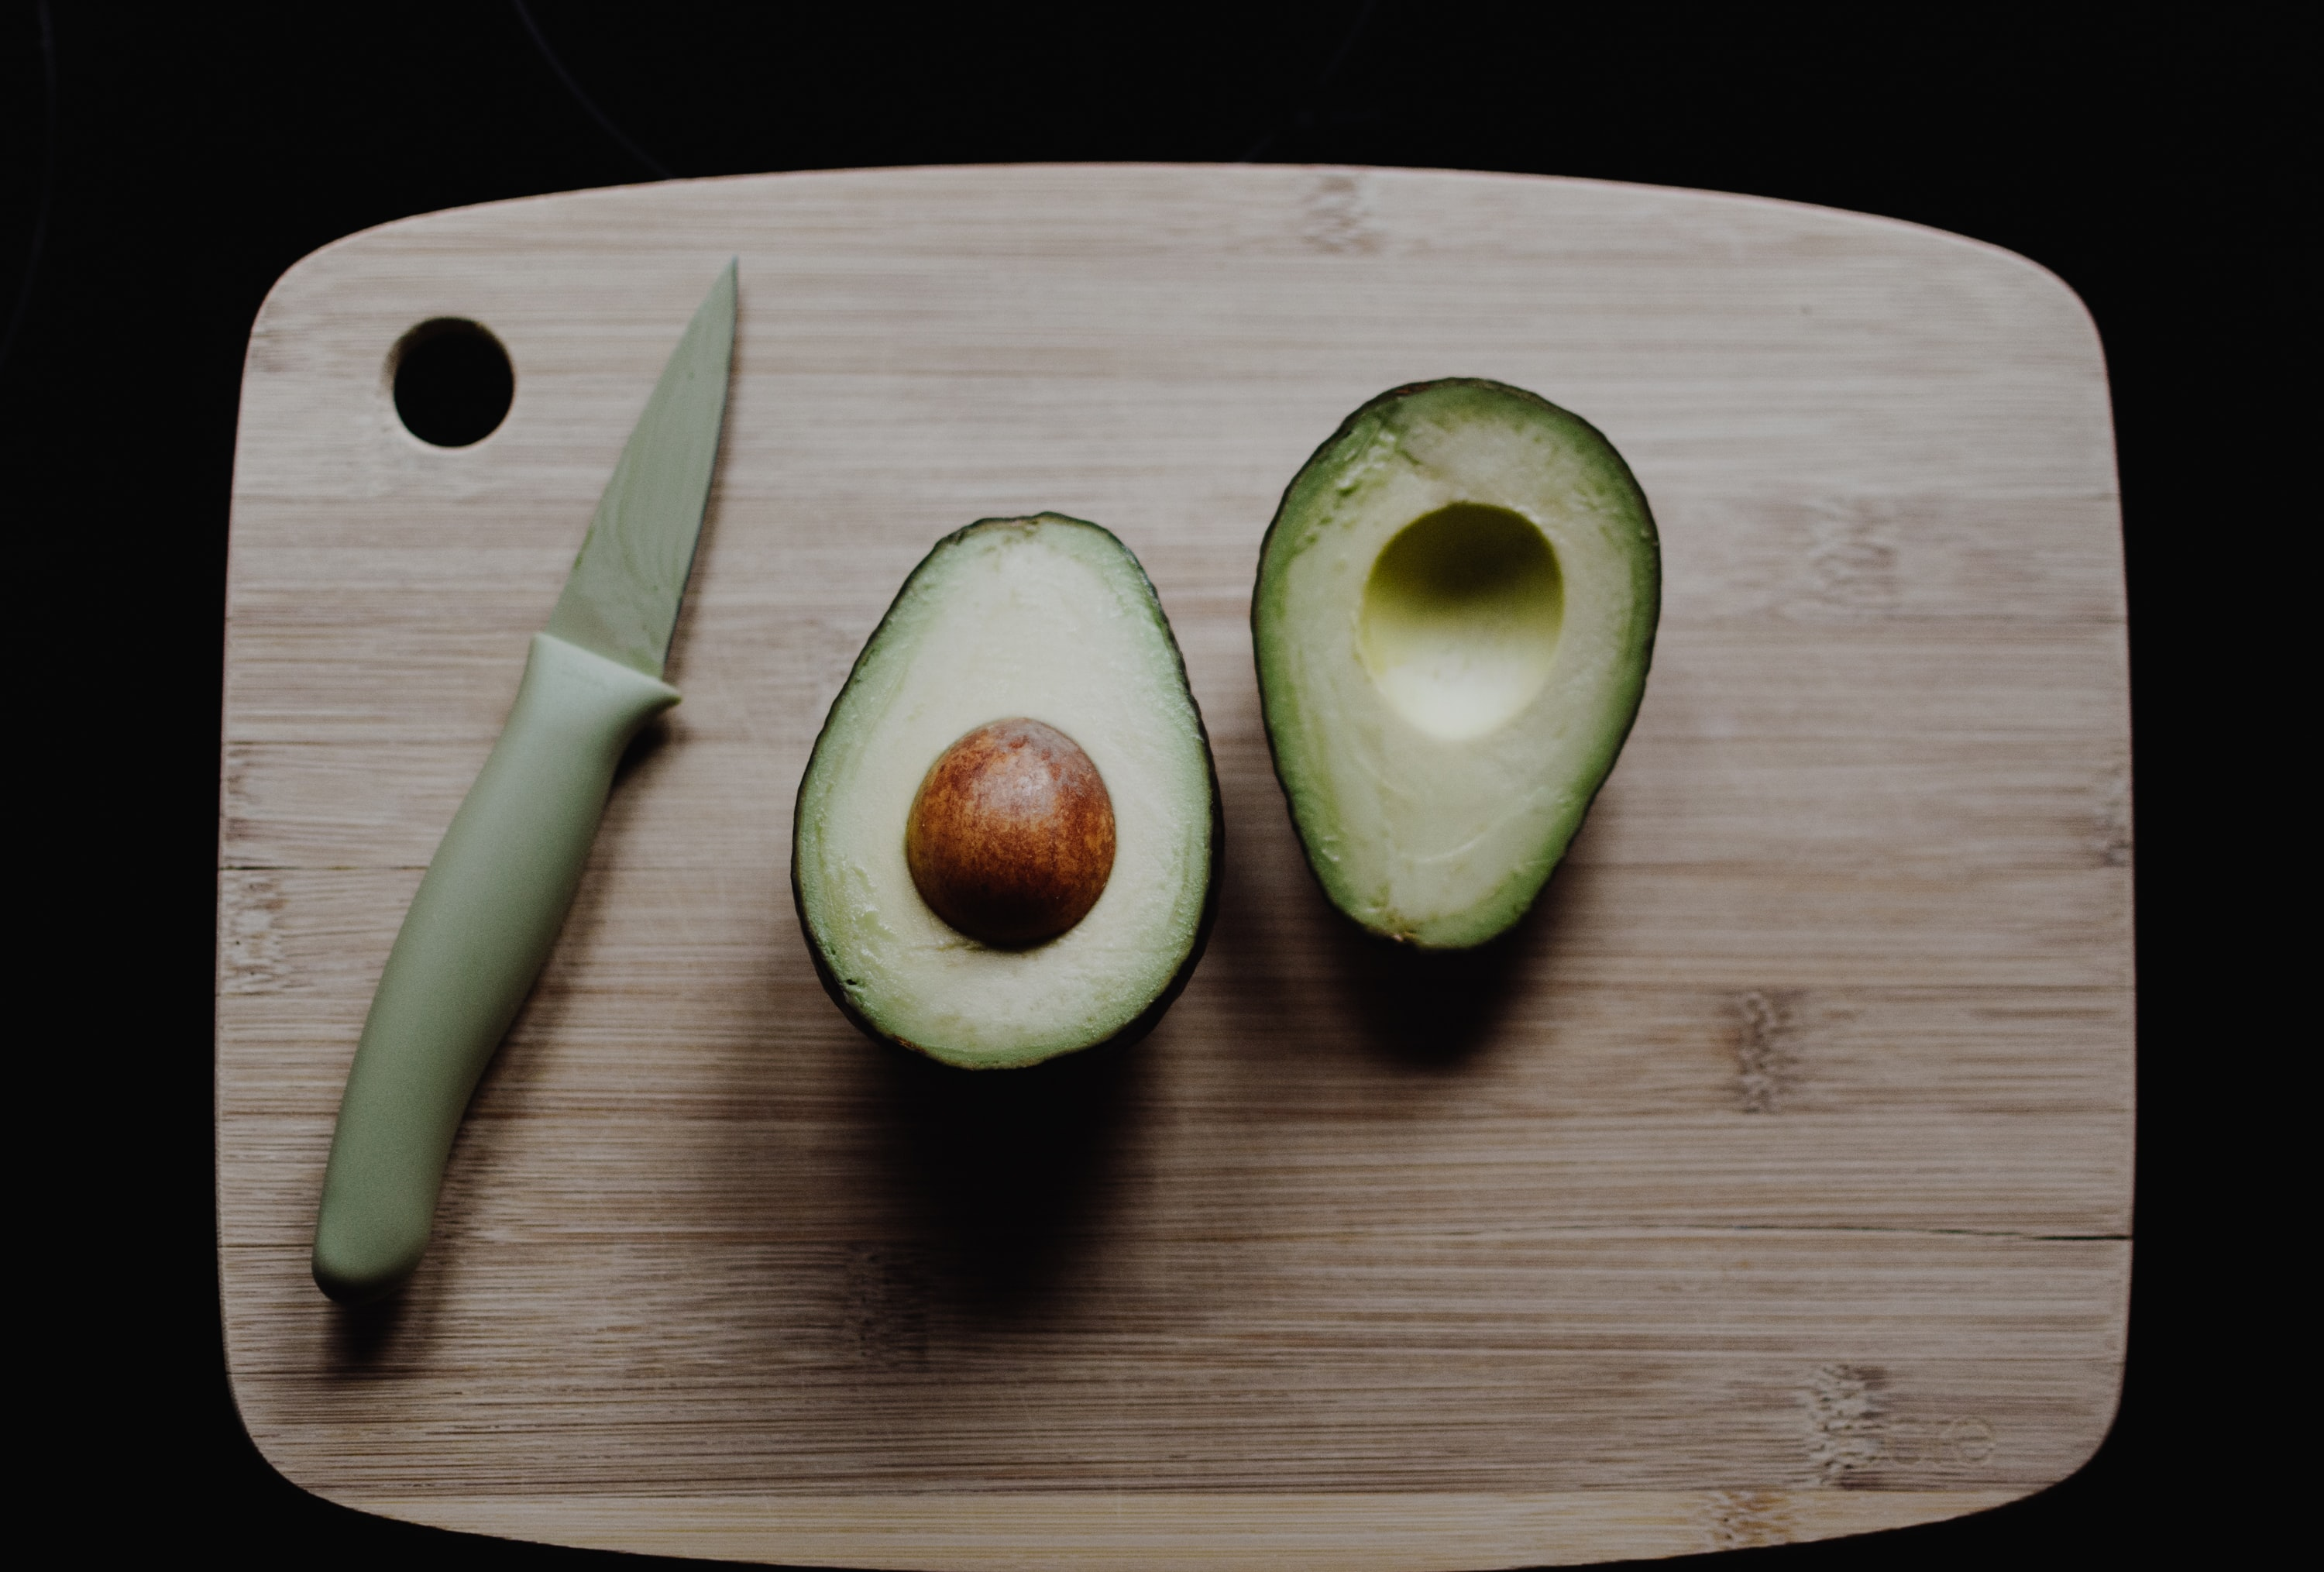 sliced avocados on top of brown wooden chopping board in top view photography